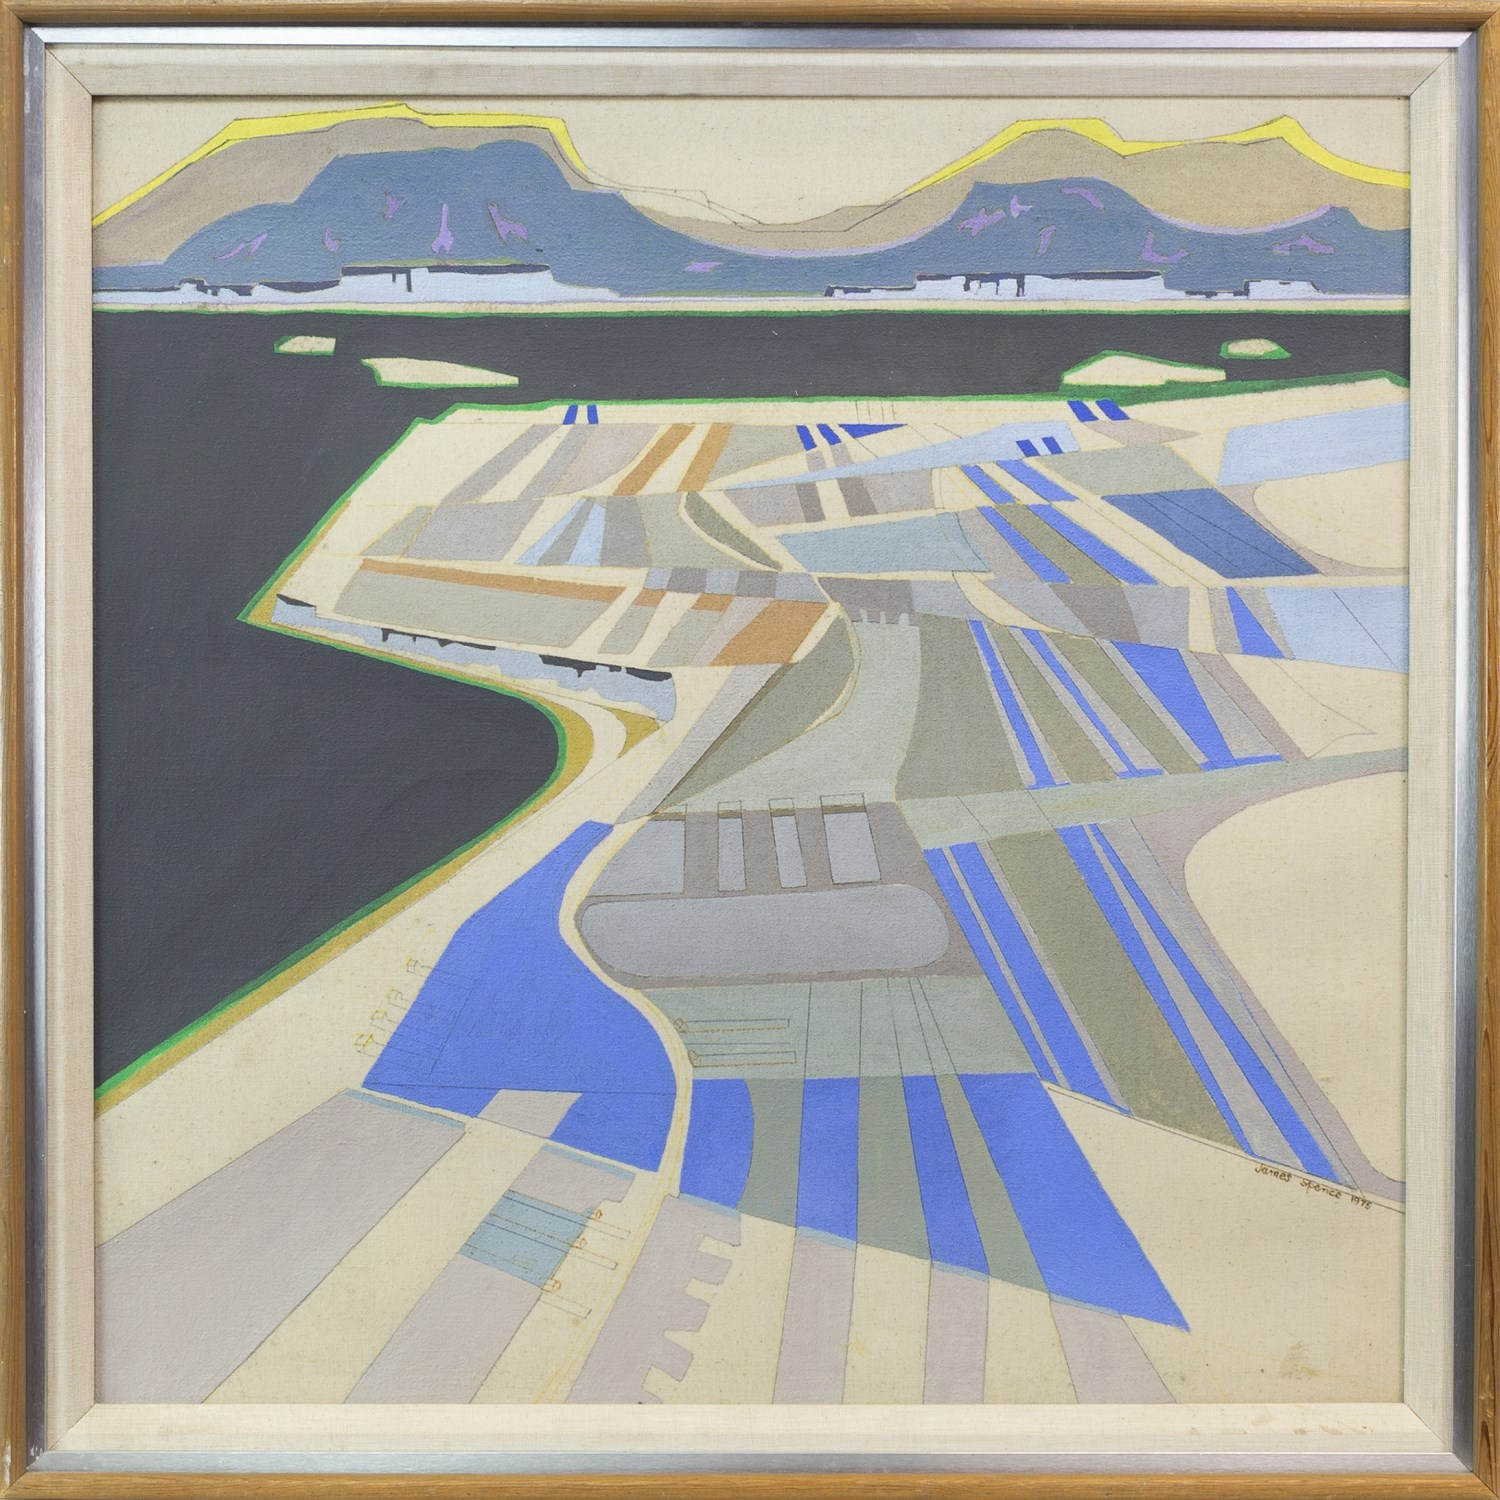 Lot 108 - DURNESS, AN ACRYLIC ON CANVAS BY JAMES SPENCE